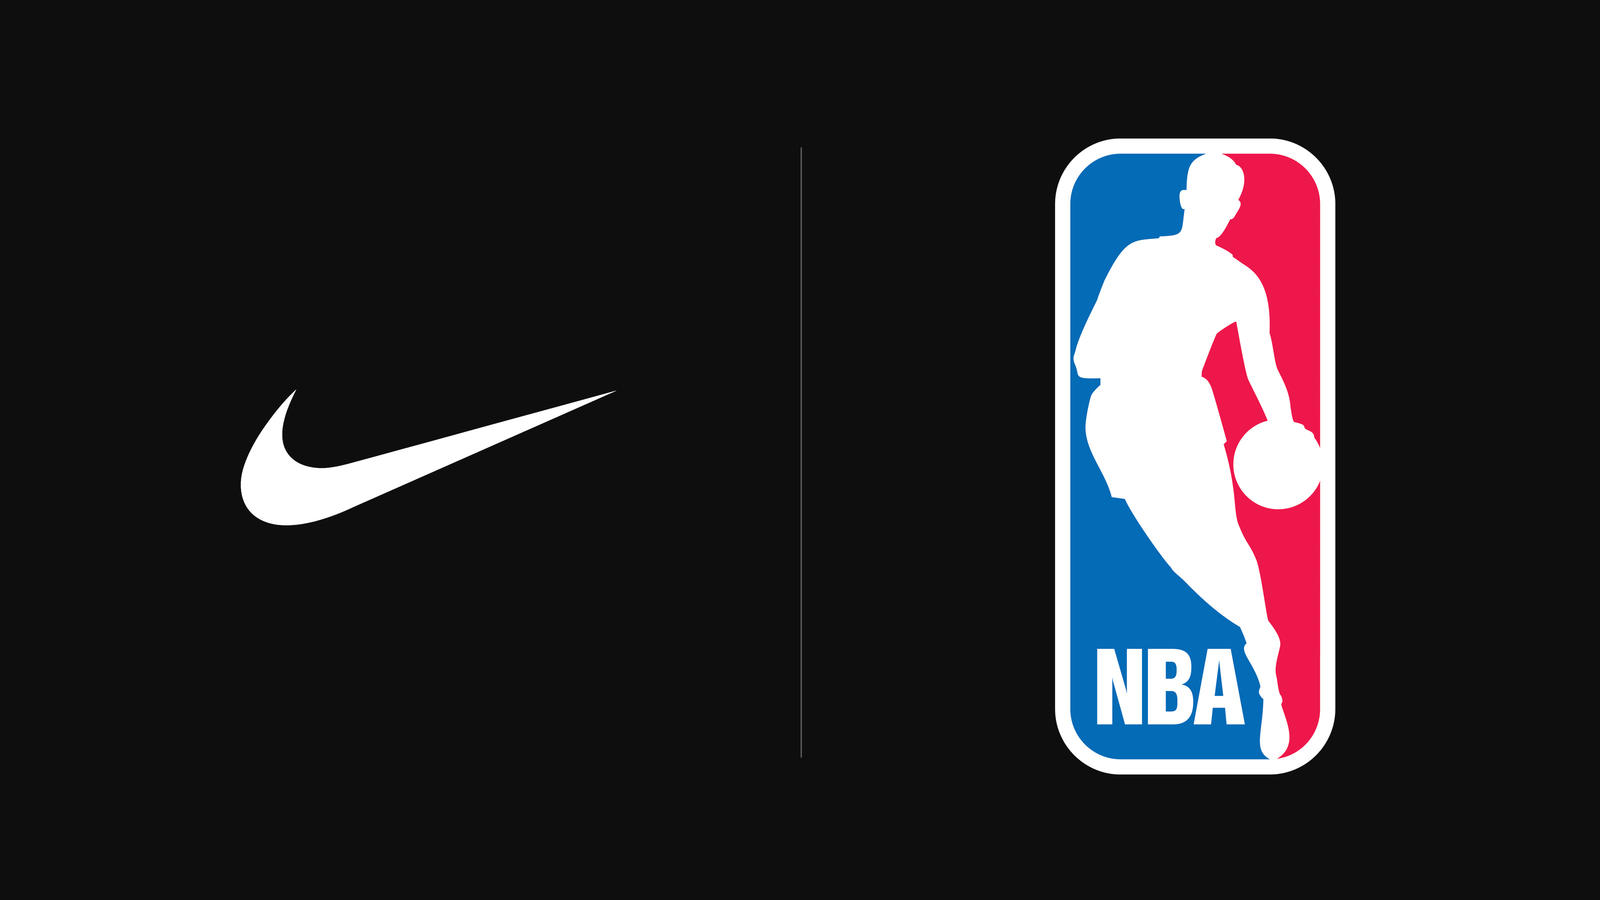 nike inc to become exclusive oncourt uniform and apparel provider rh news nike com Cool Basketball Logos Cool Basketball Logos